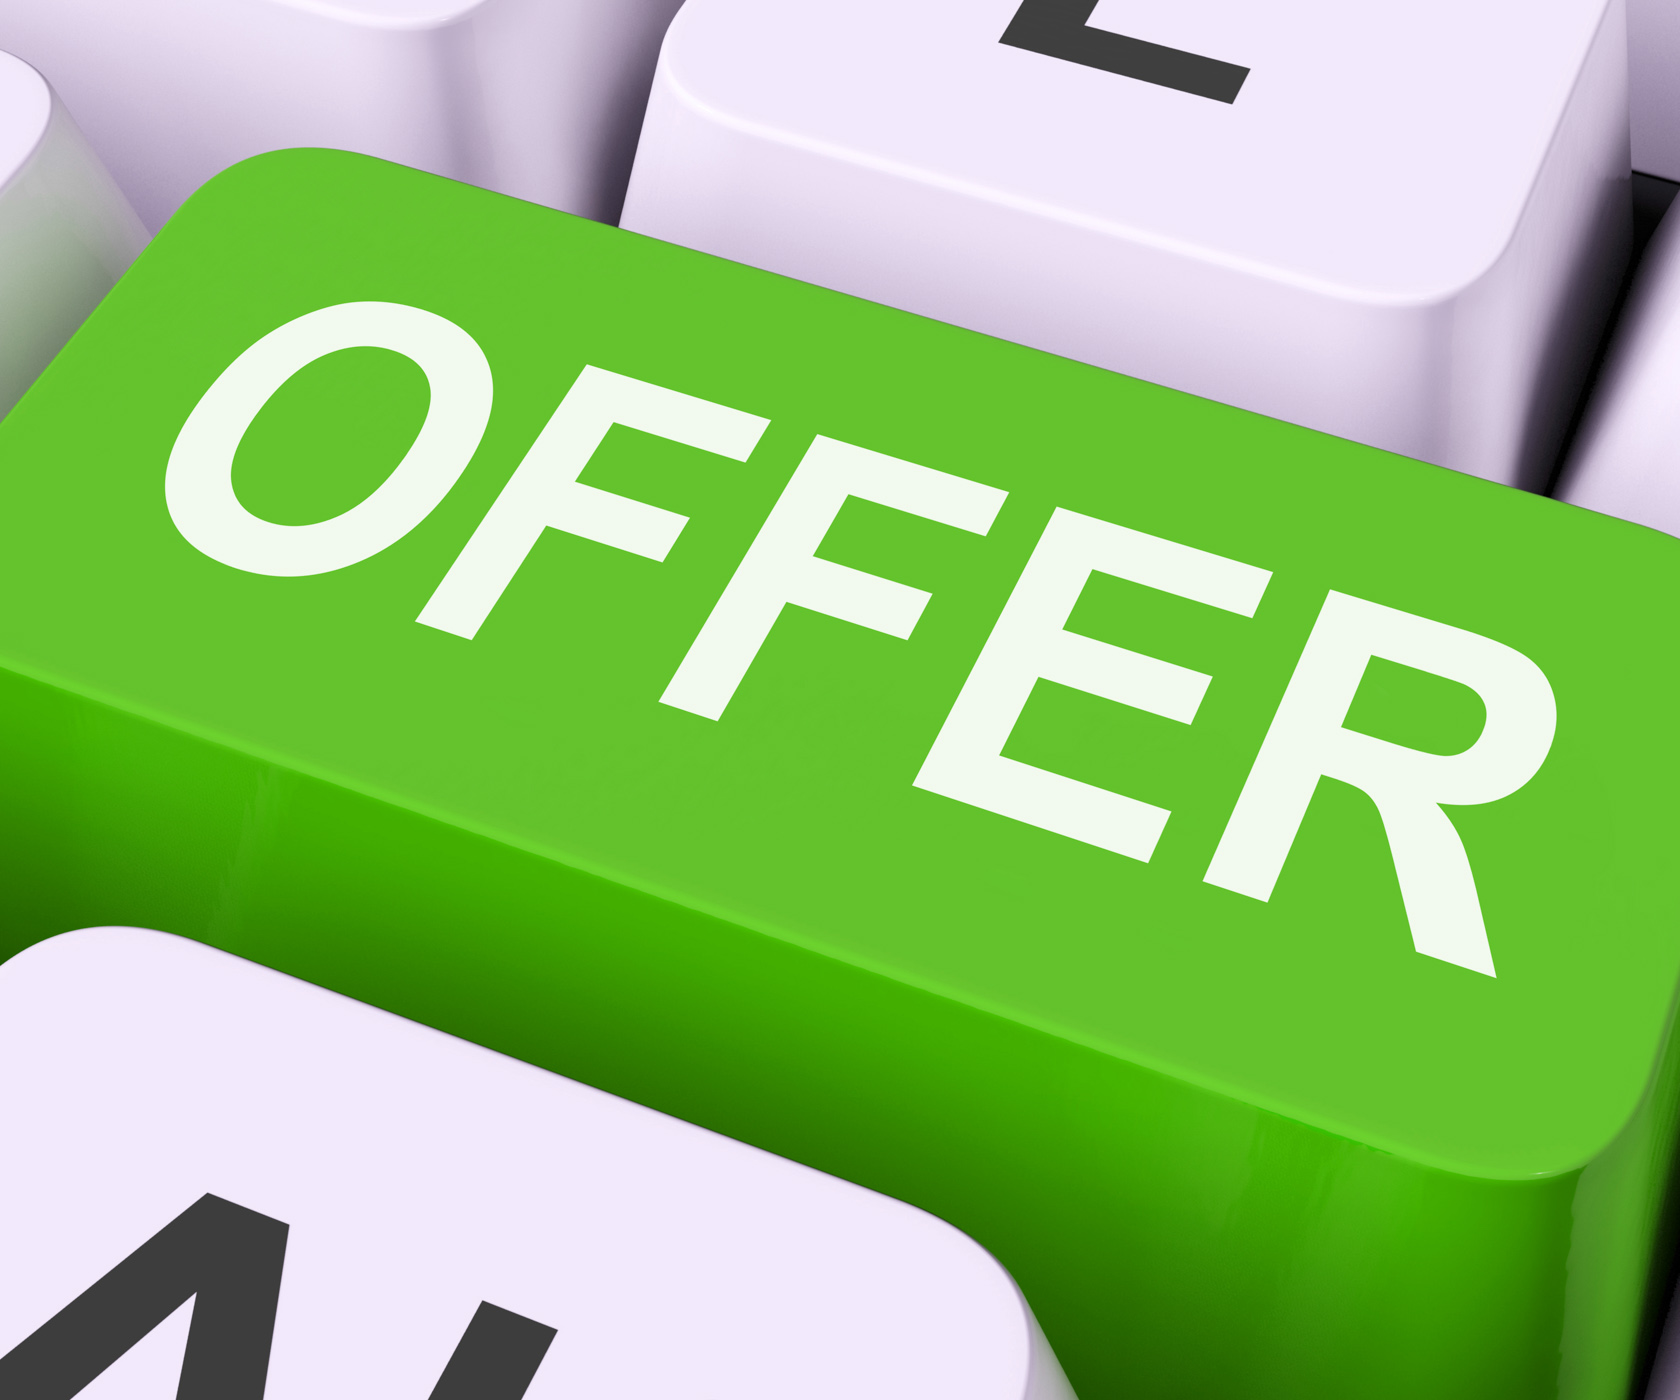 Offer Button Shows Discount Promo Or Save, Reduction, Promotional, Sale, Savings, HQ Photo